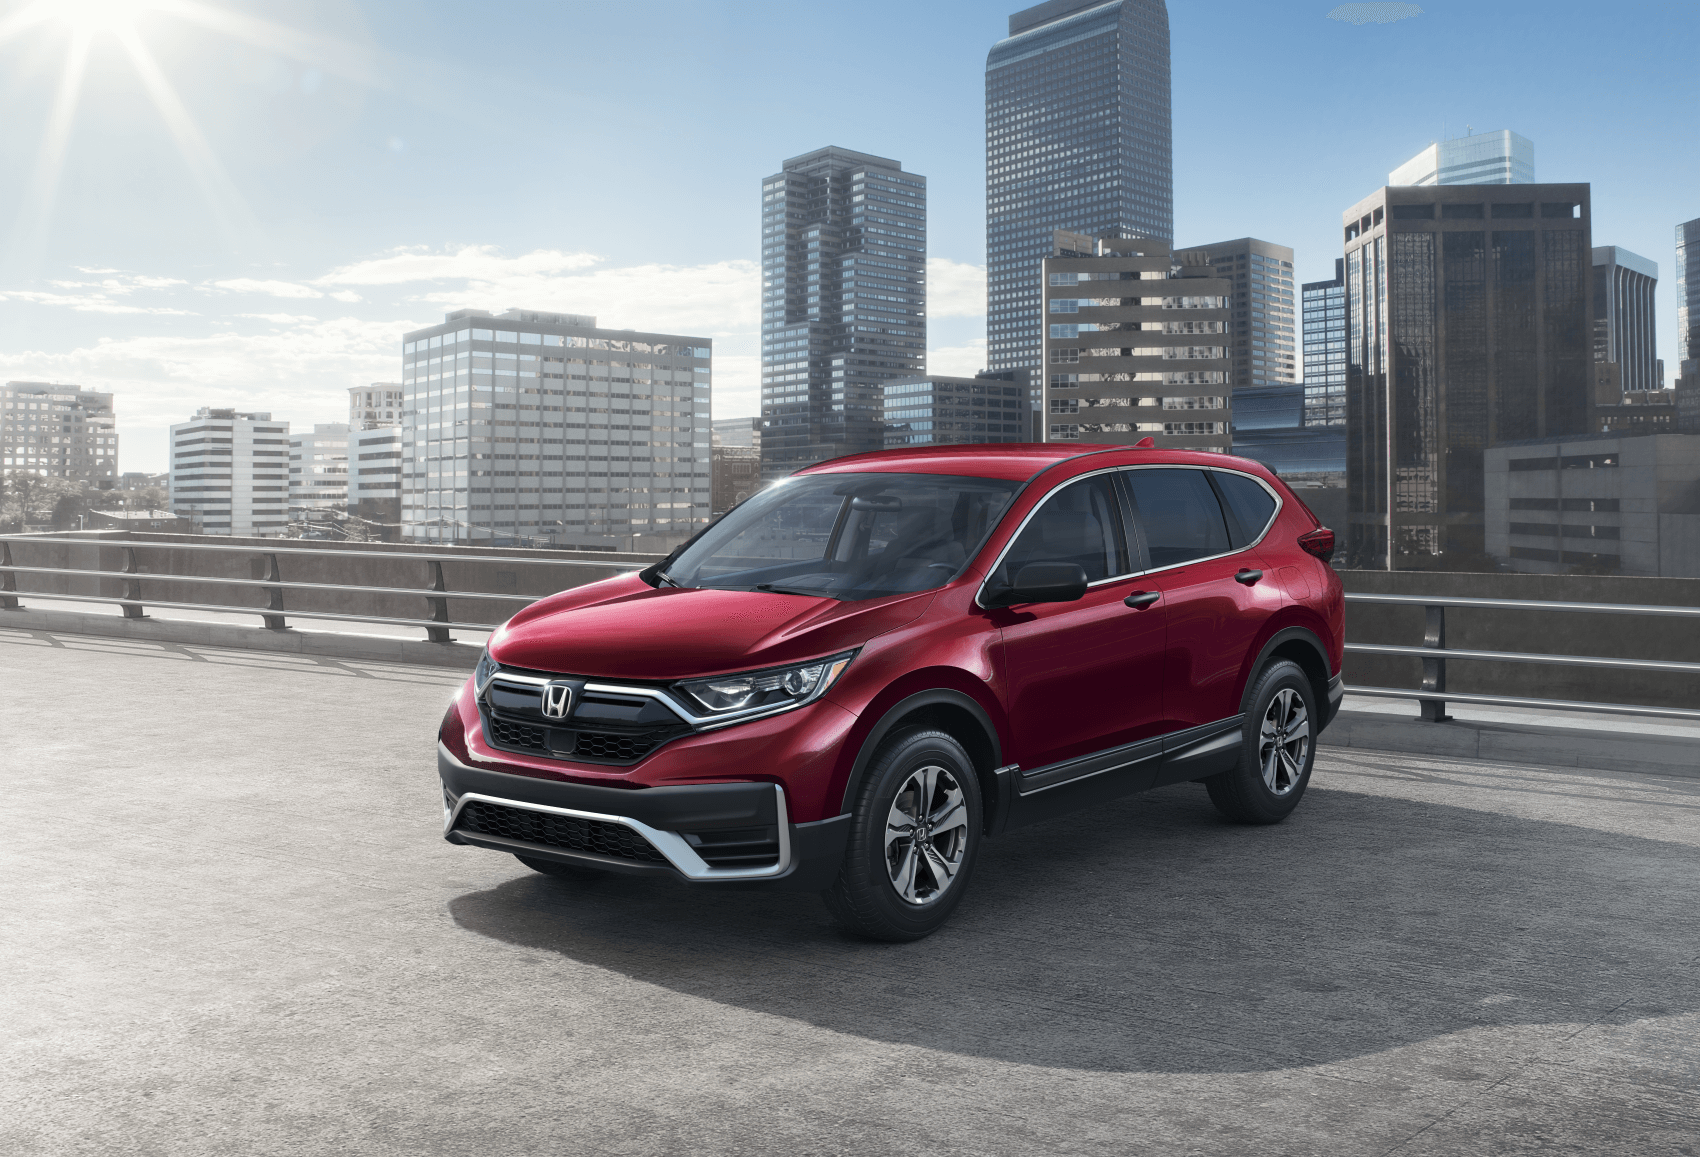 2021 Honda CR-V LX Red Outside City Sussman Honda